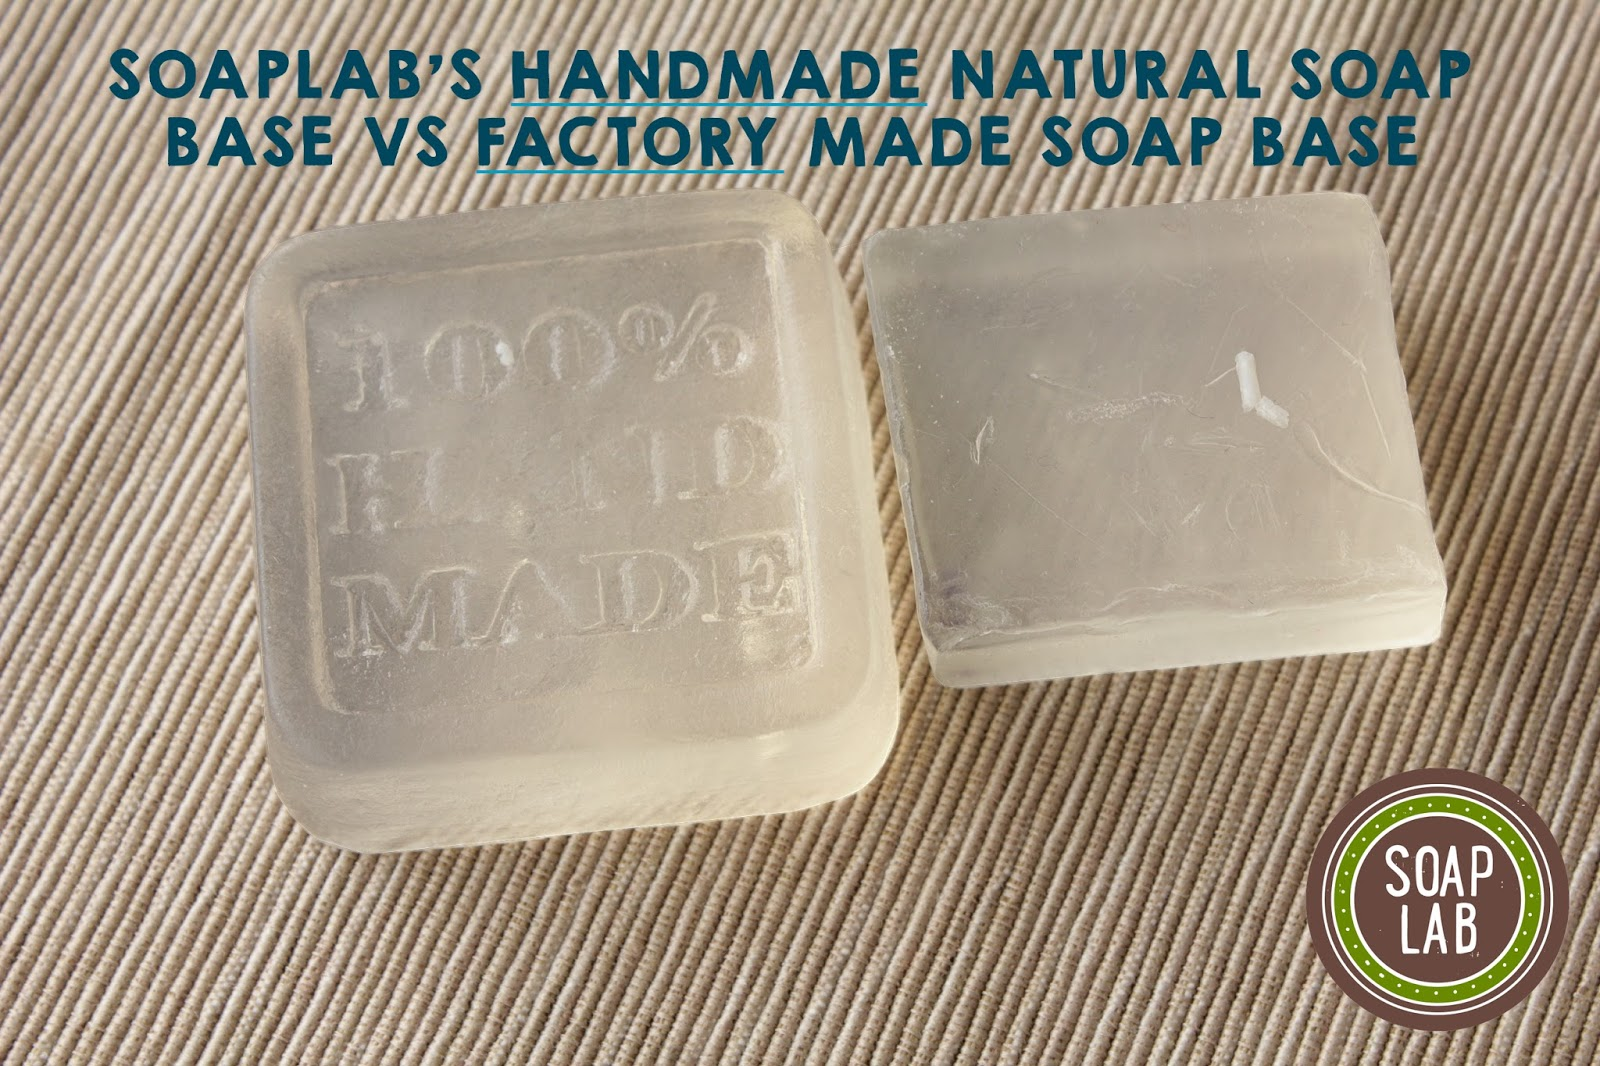 Diy Soap Without Glycerin Soaplab Malaysia Handmade Natural Soap Base By Soap Lab